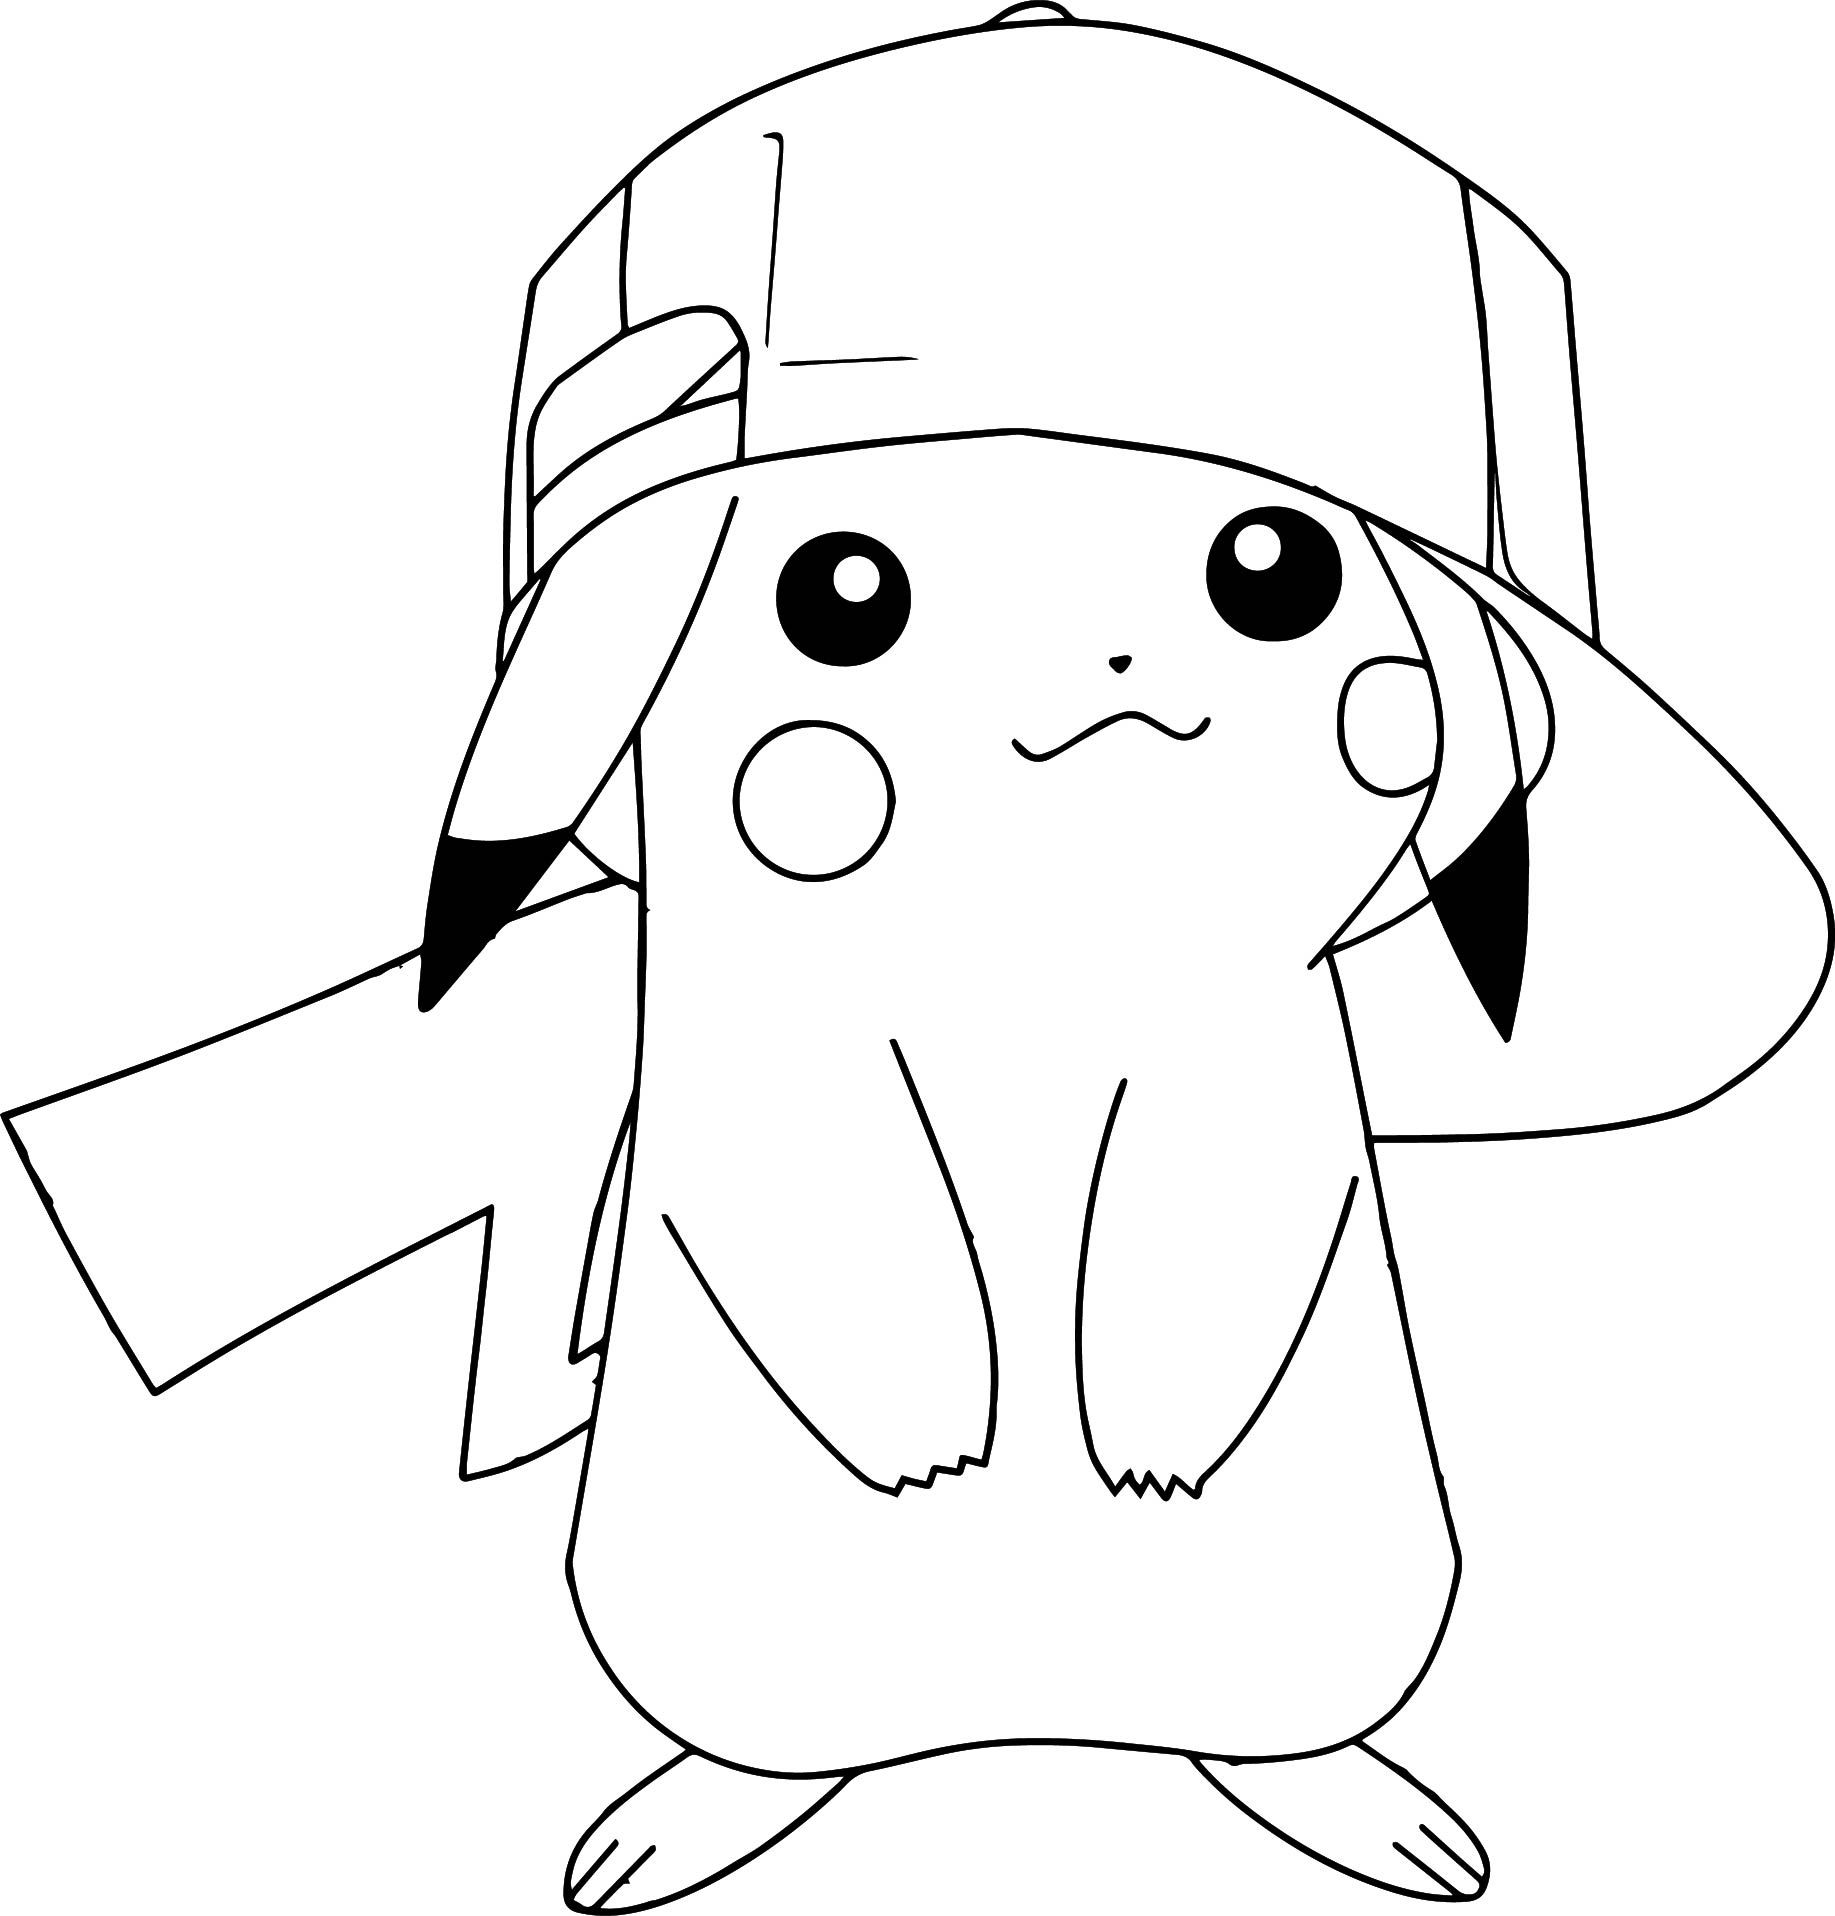 Coloring pages for pokemon - Perfect Pokemon Coloring Pages